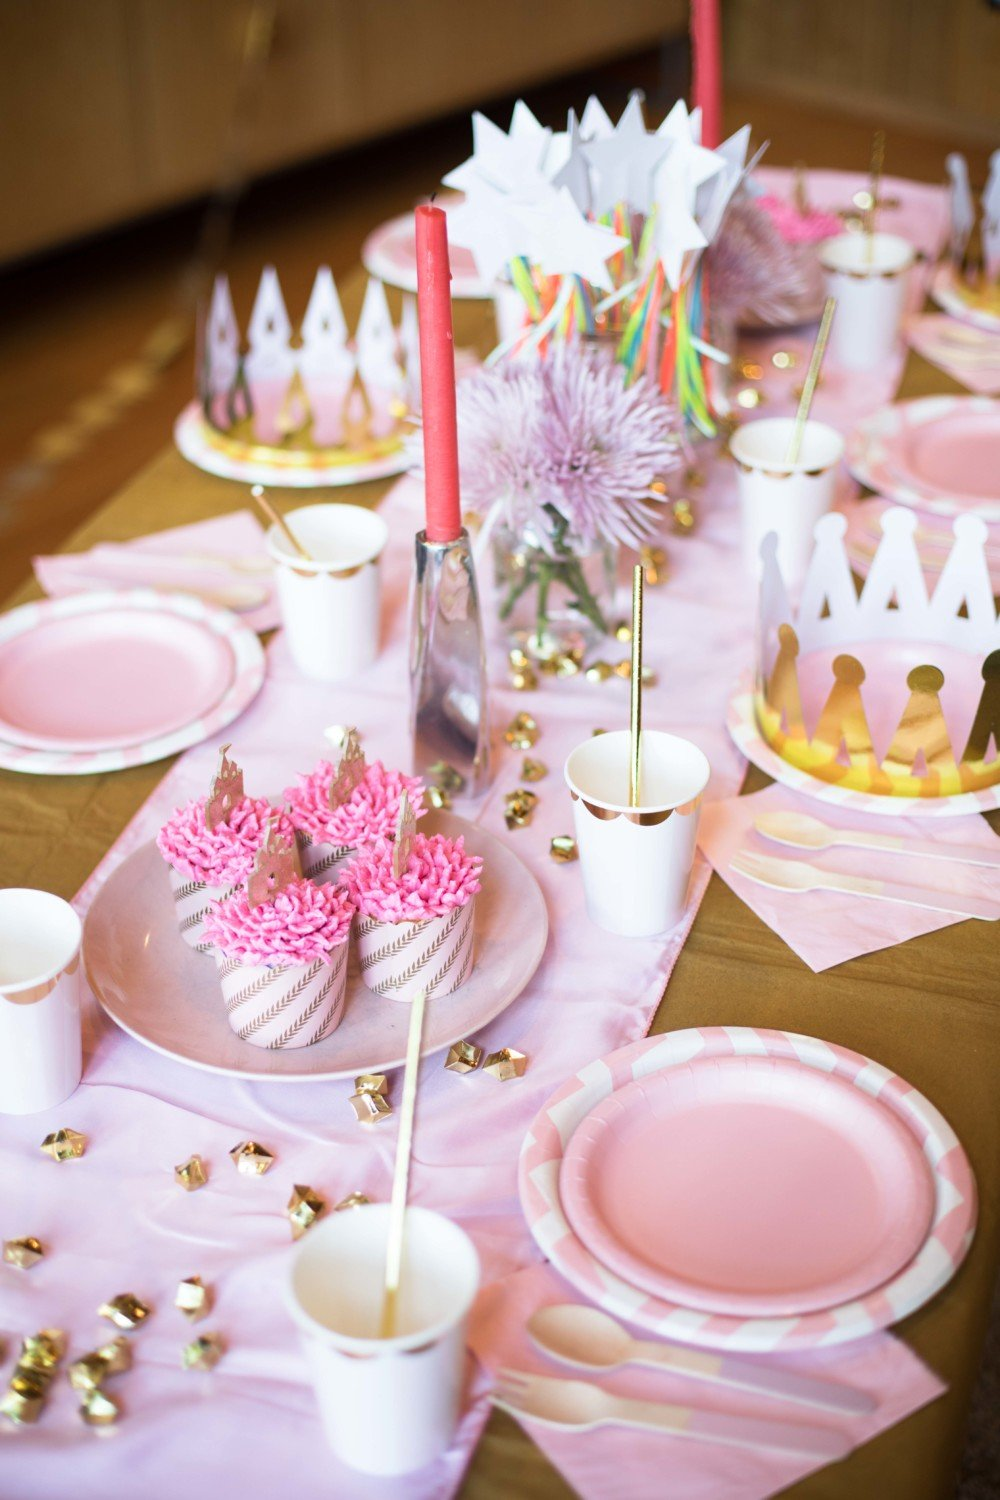 Princess Party Theme Table Setting - Kiki Boxes